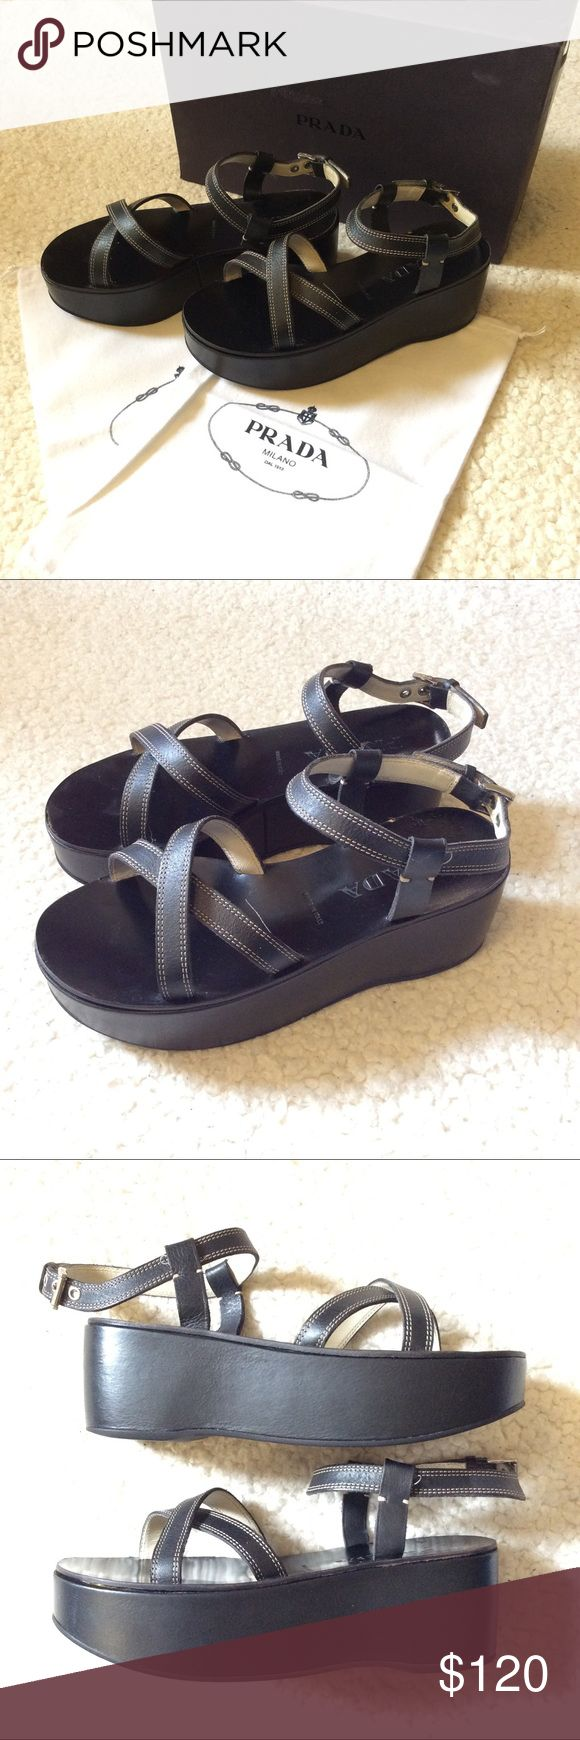 🌺 Prada Platform Sandals 🌺 Super cute Prada Platform sandals. Very comfortable. Wear with jeans or a dress! You can't go wrong! Some minor imperfections. Comes with dust bag and original box. Prada Shoes Sandals